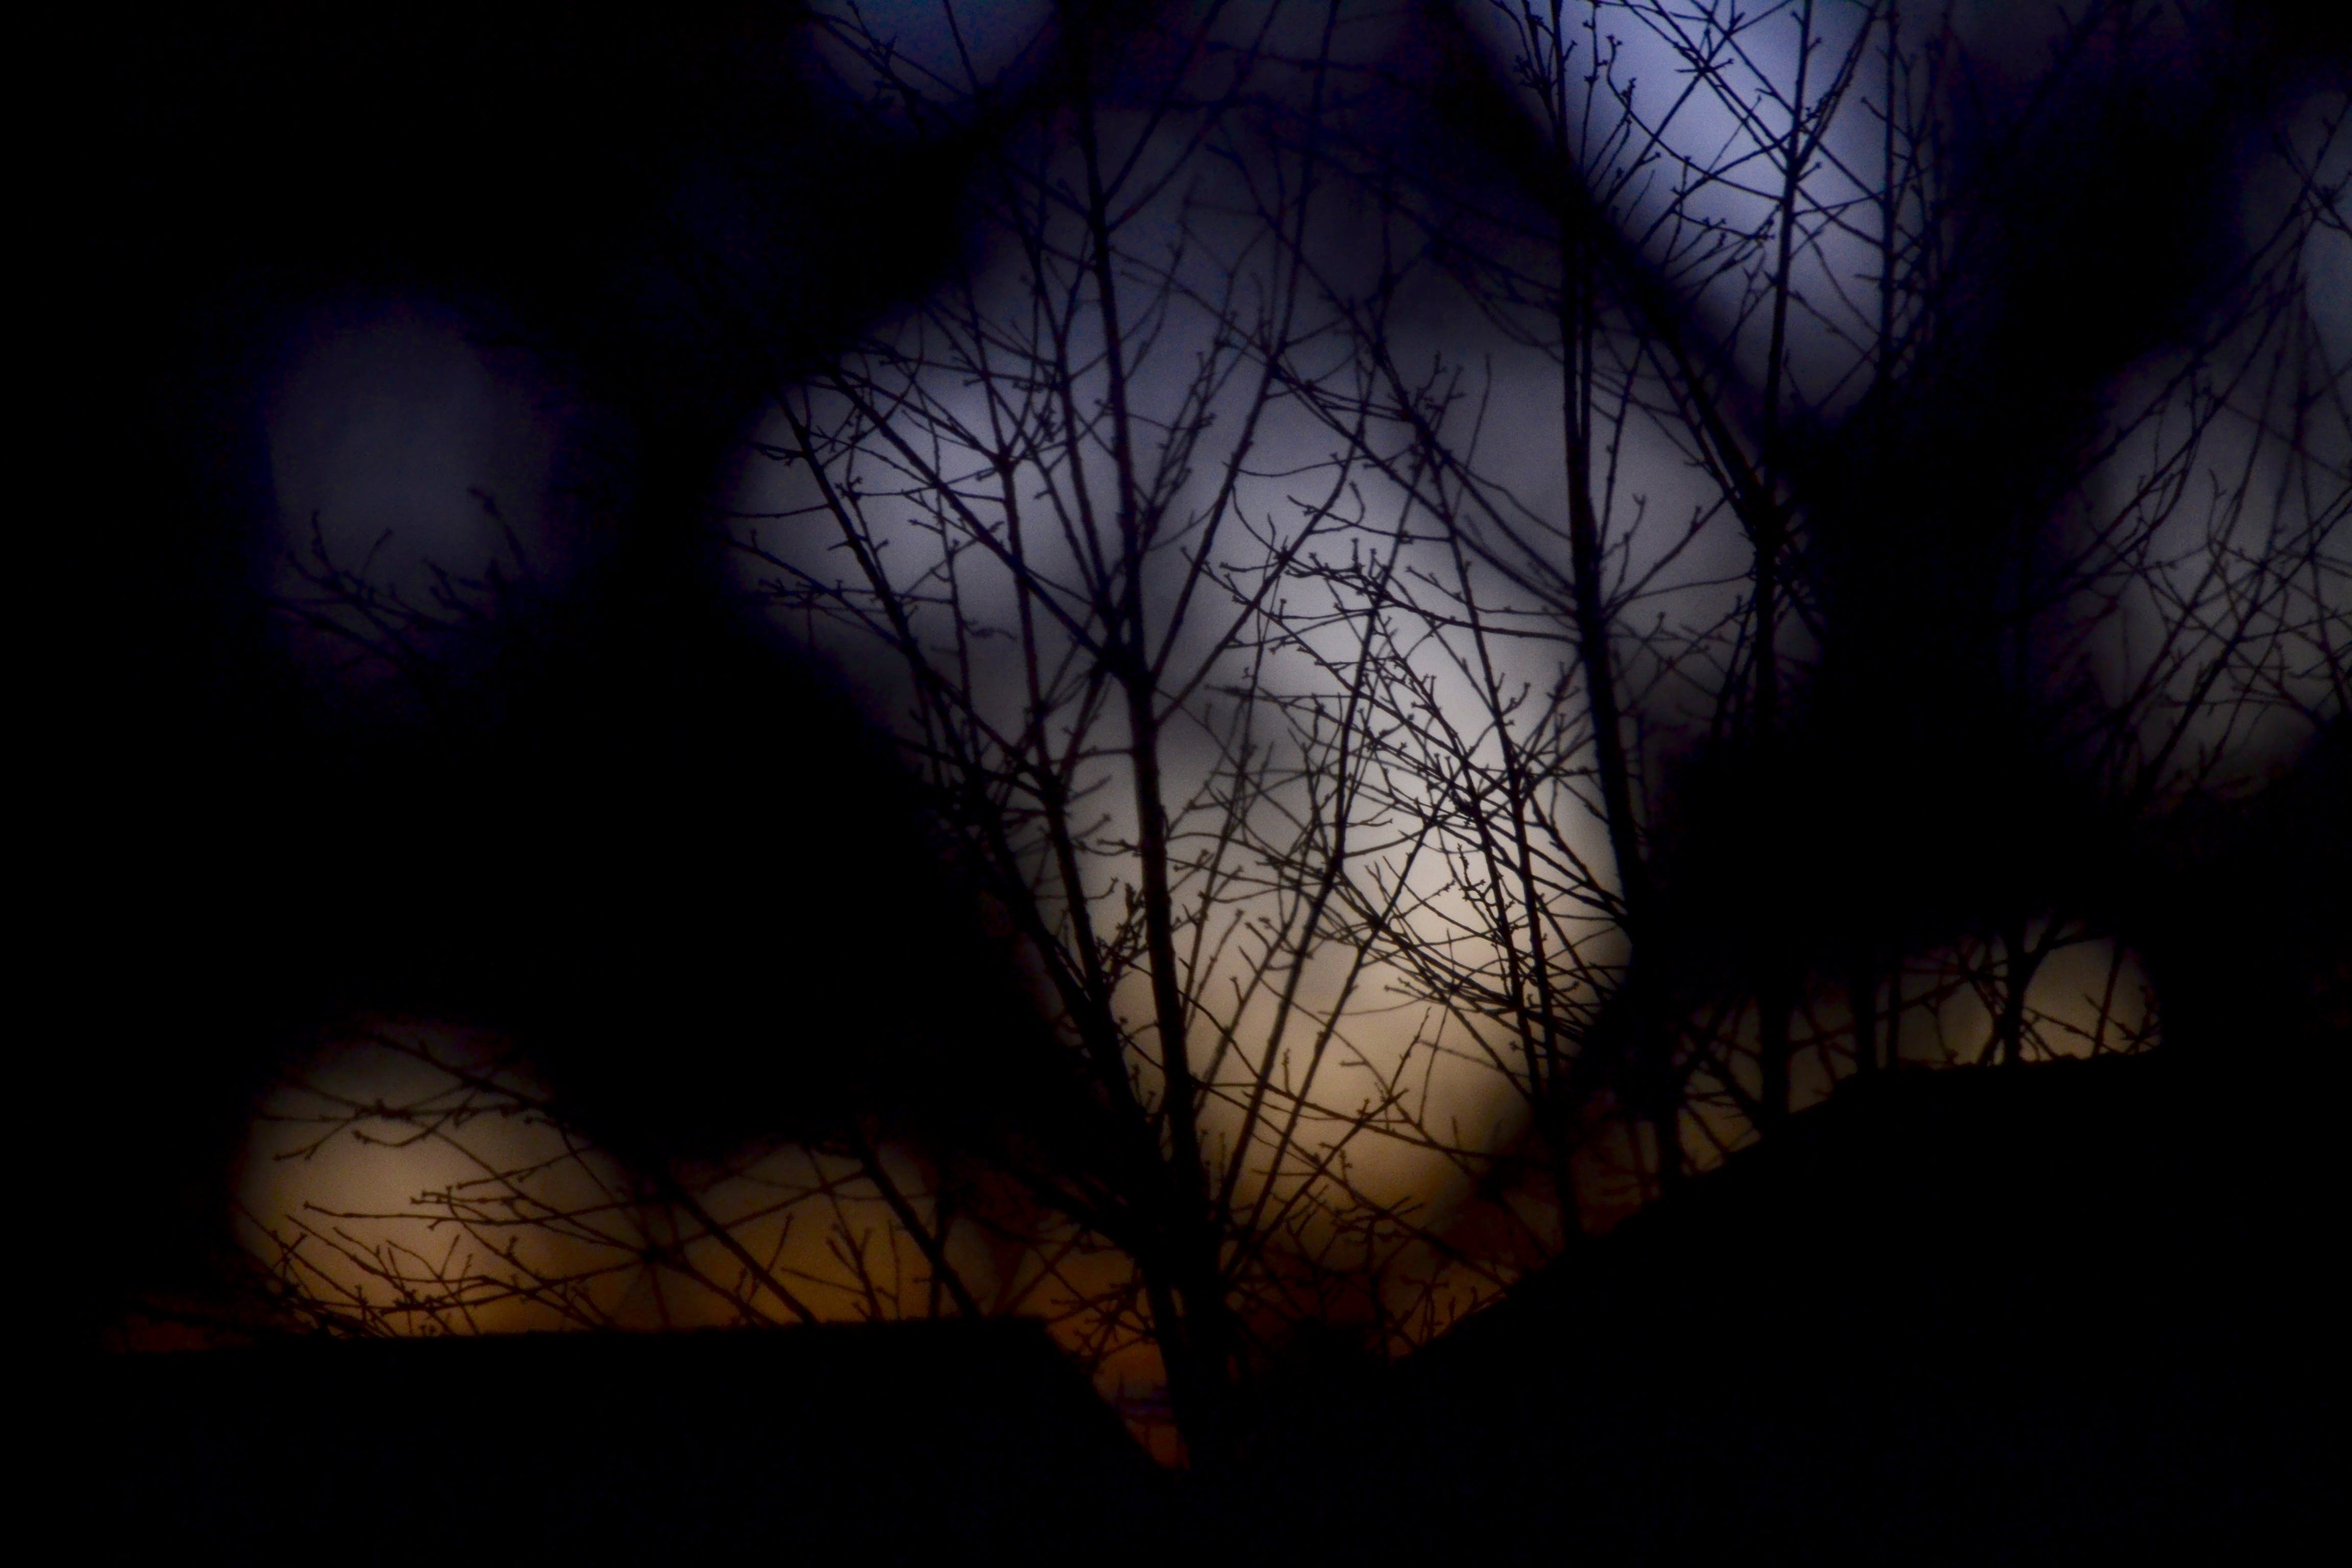 Free stock photo of sky, sunset, branches, tree